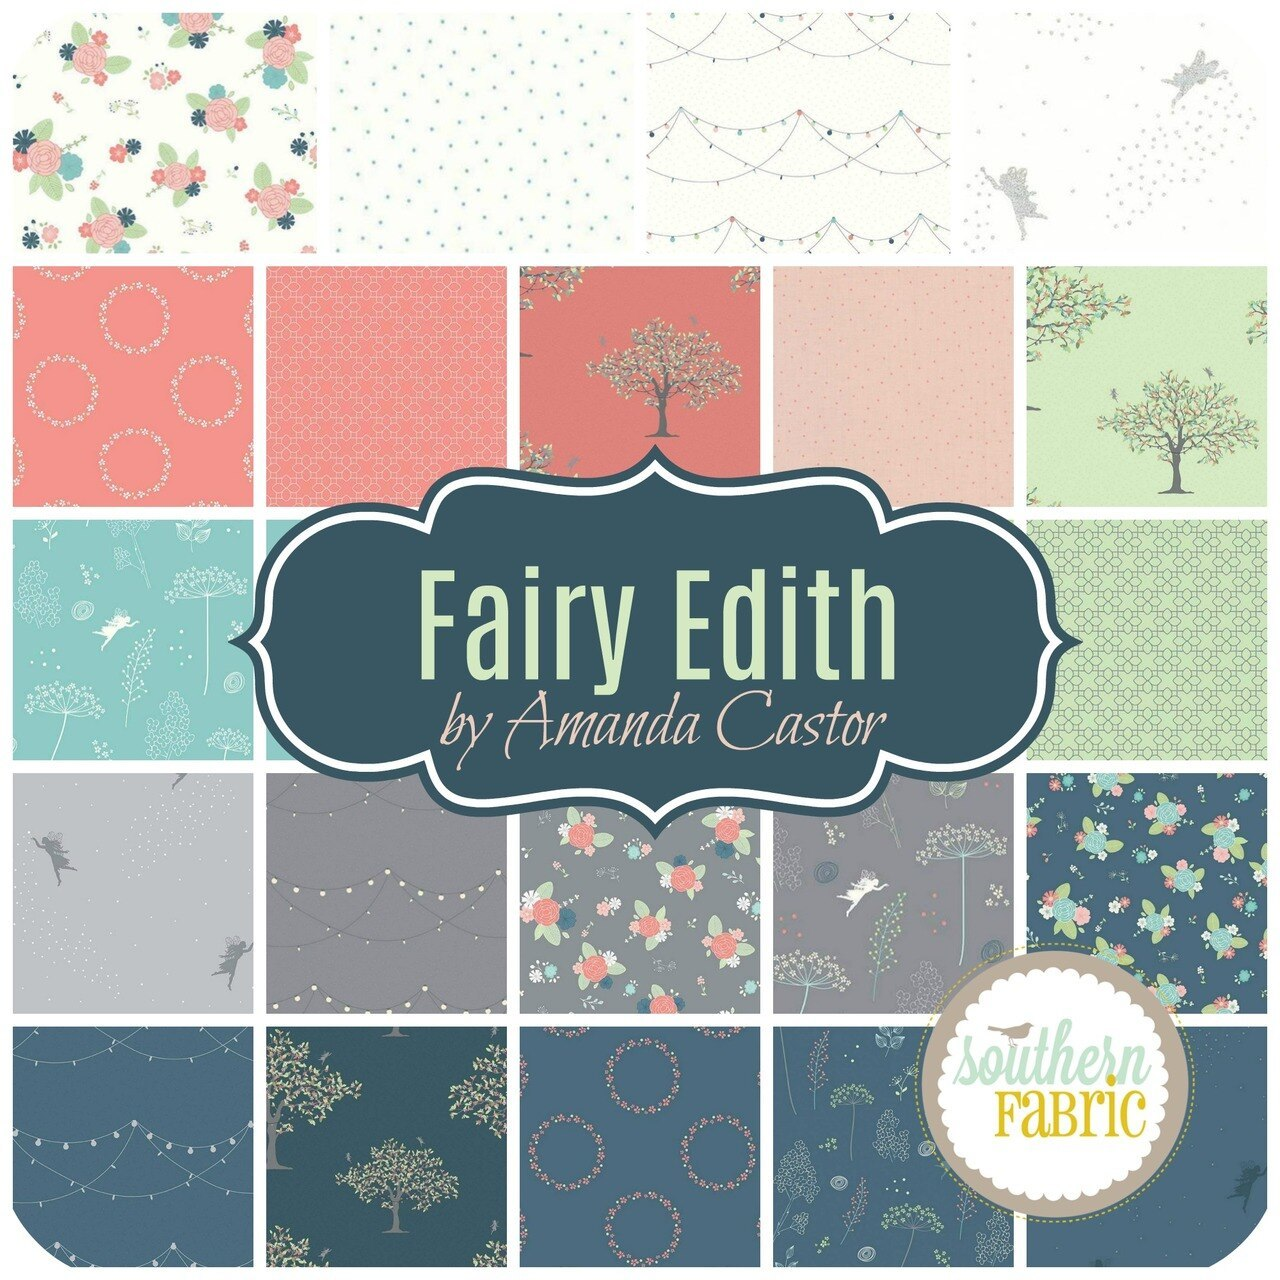 Fairy Edith by Amanda Castor